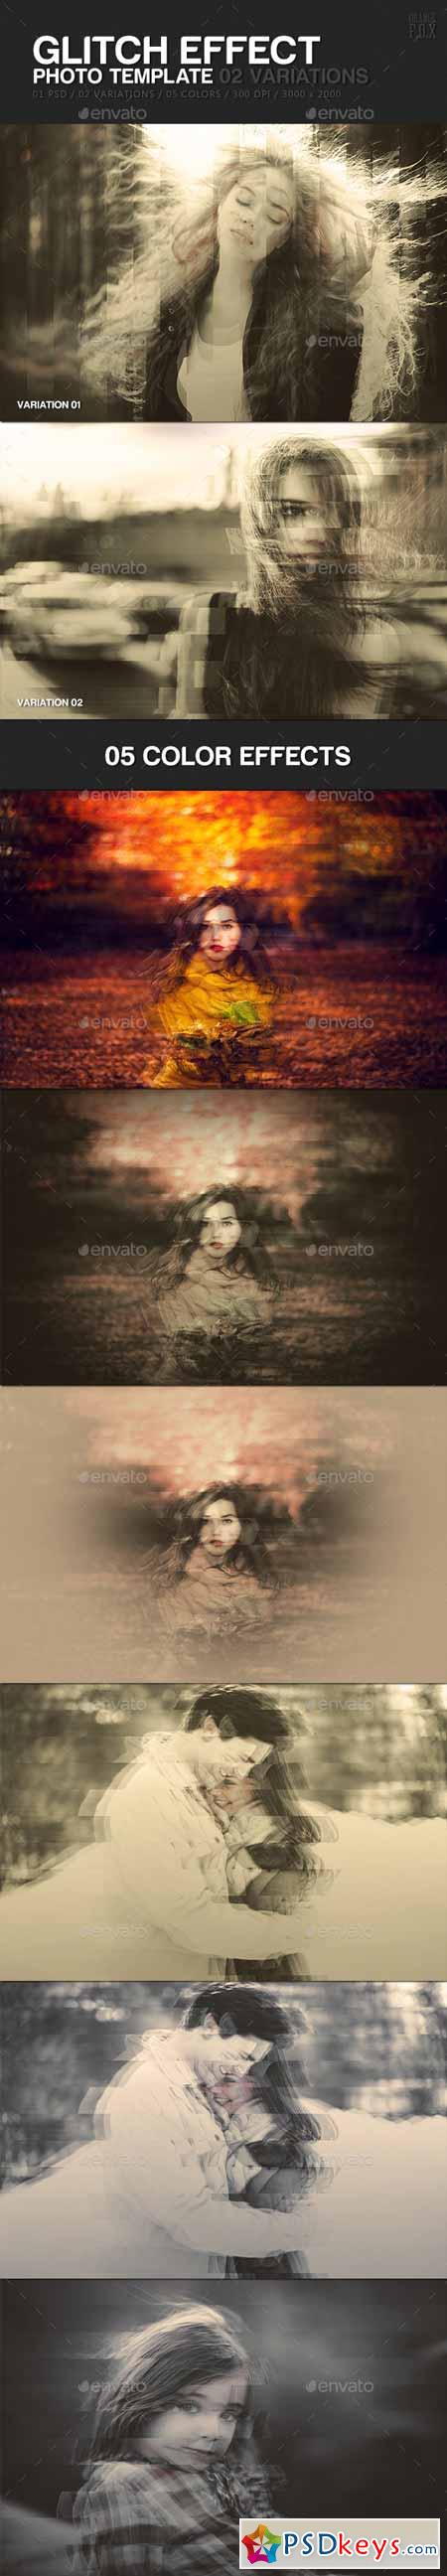 Glitch Effect Photo Template 13241037